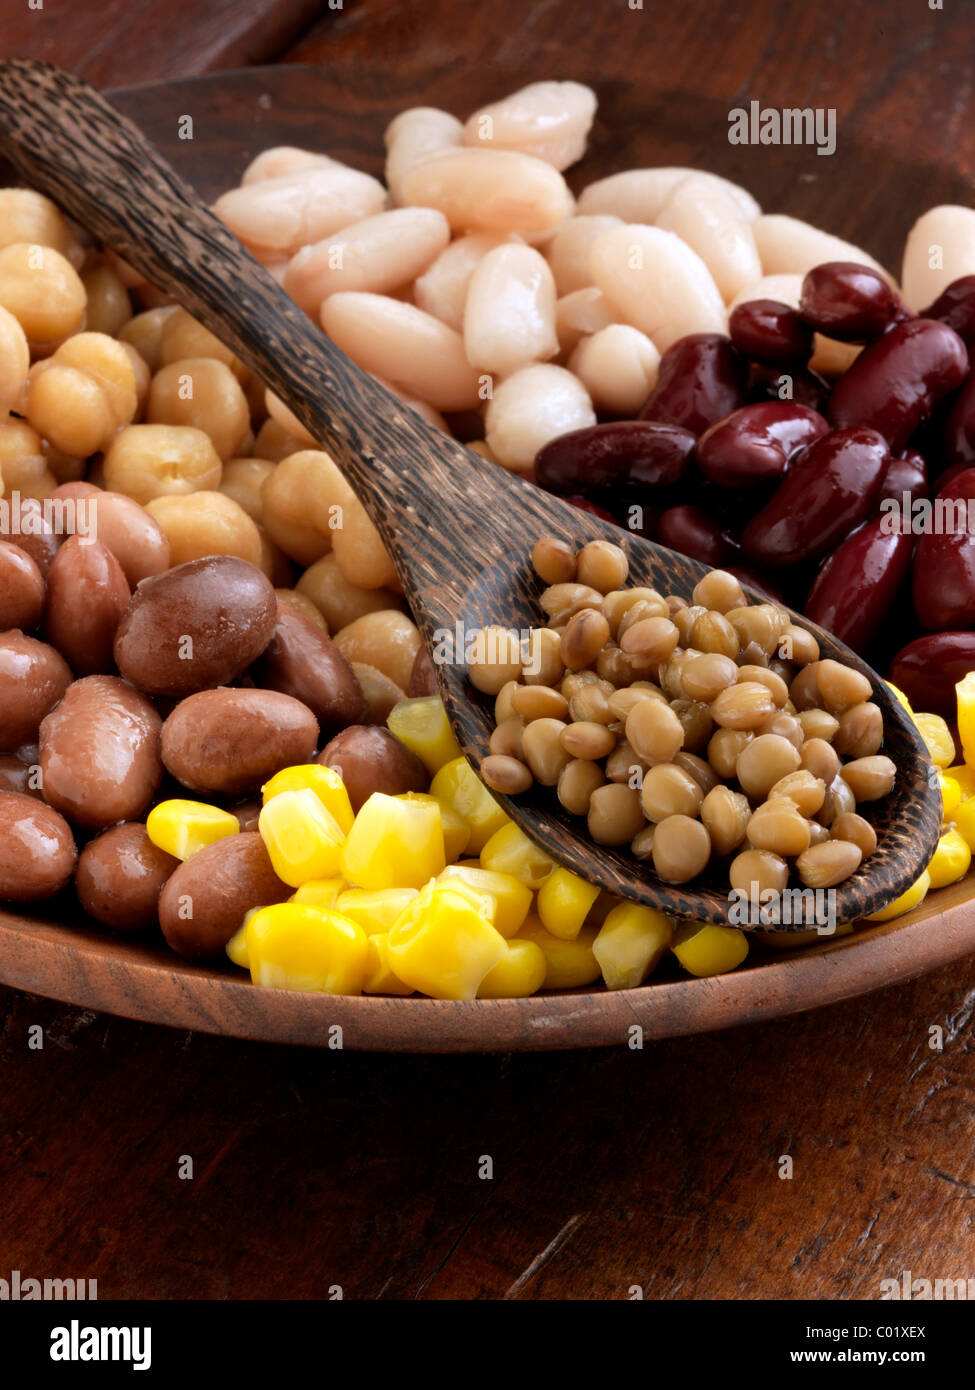 A bowl of beans red kidney lentils sweetcorn butter beans borlotti chick peas garbanzo beans - Stock Image